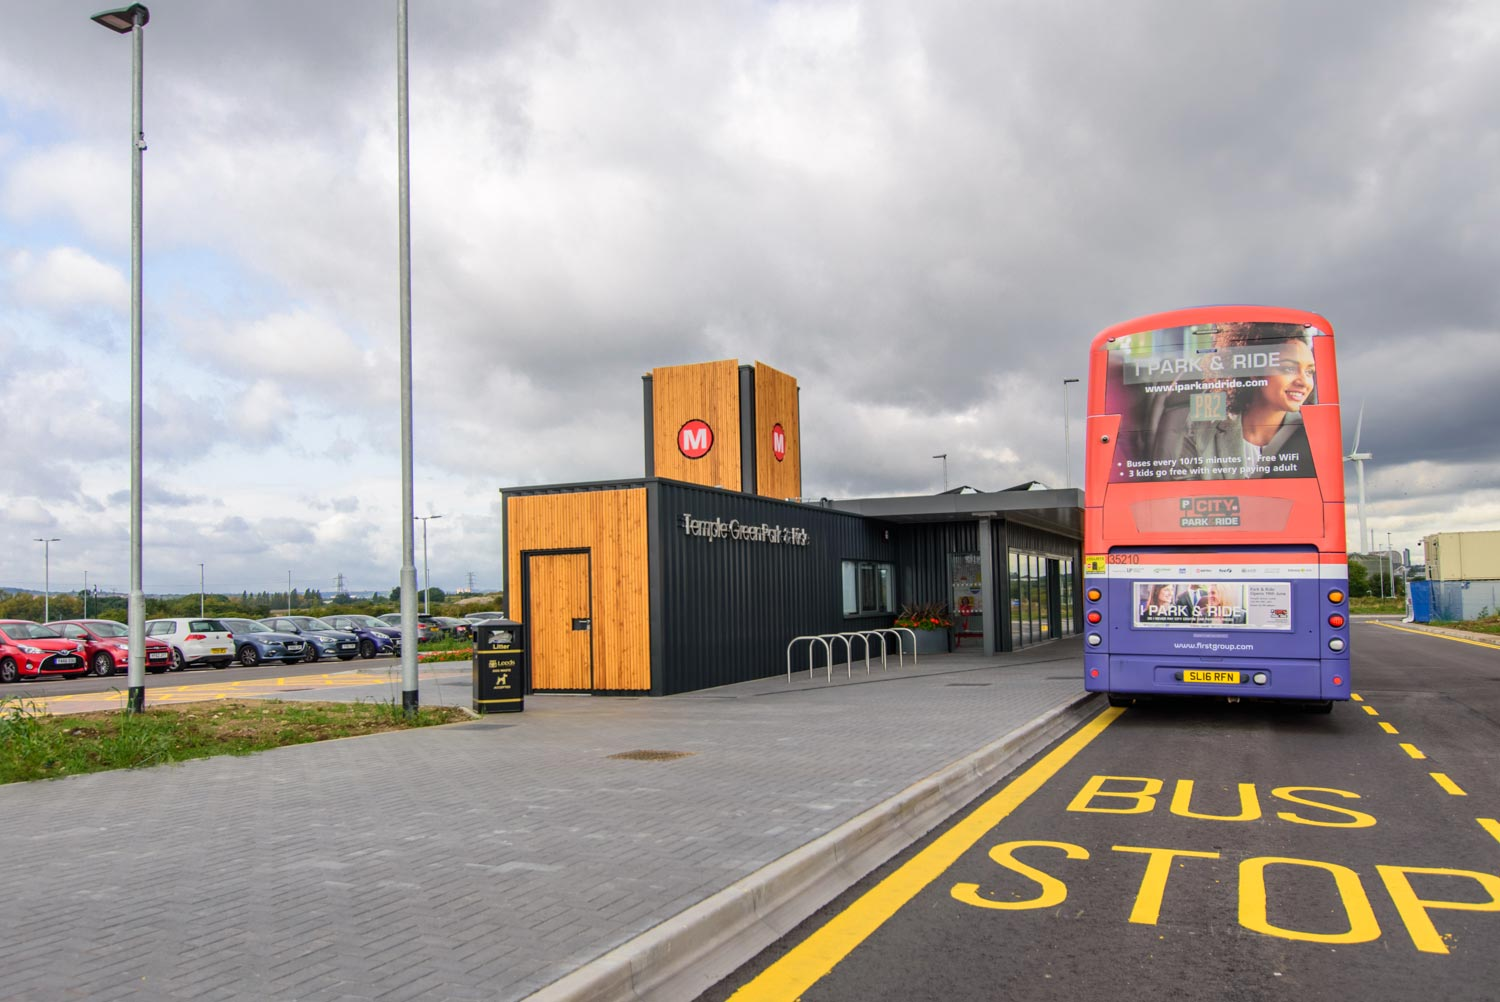 Temple Green Leeds - Modular Park and Ride station